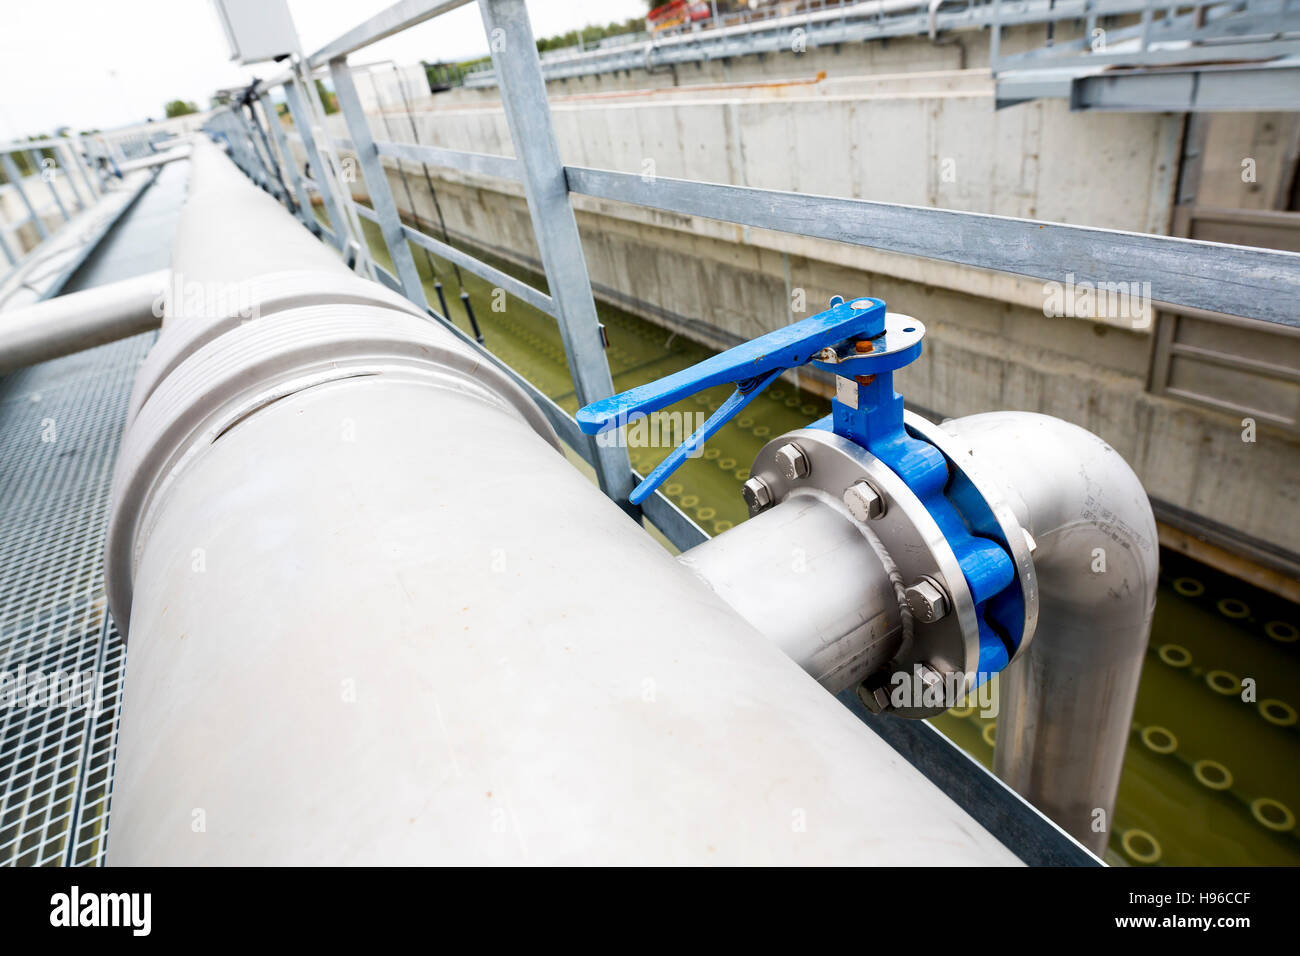 Water treatment plant piping system. Modern urban wastewater treatment plant. Water purification is the process - Stock Image